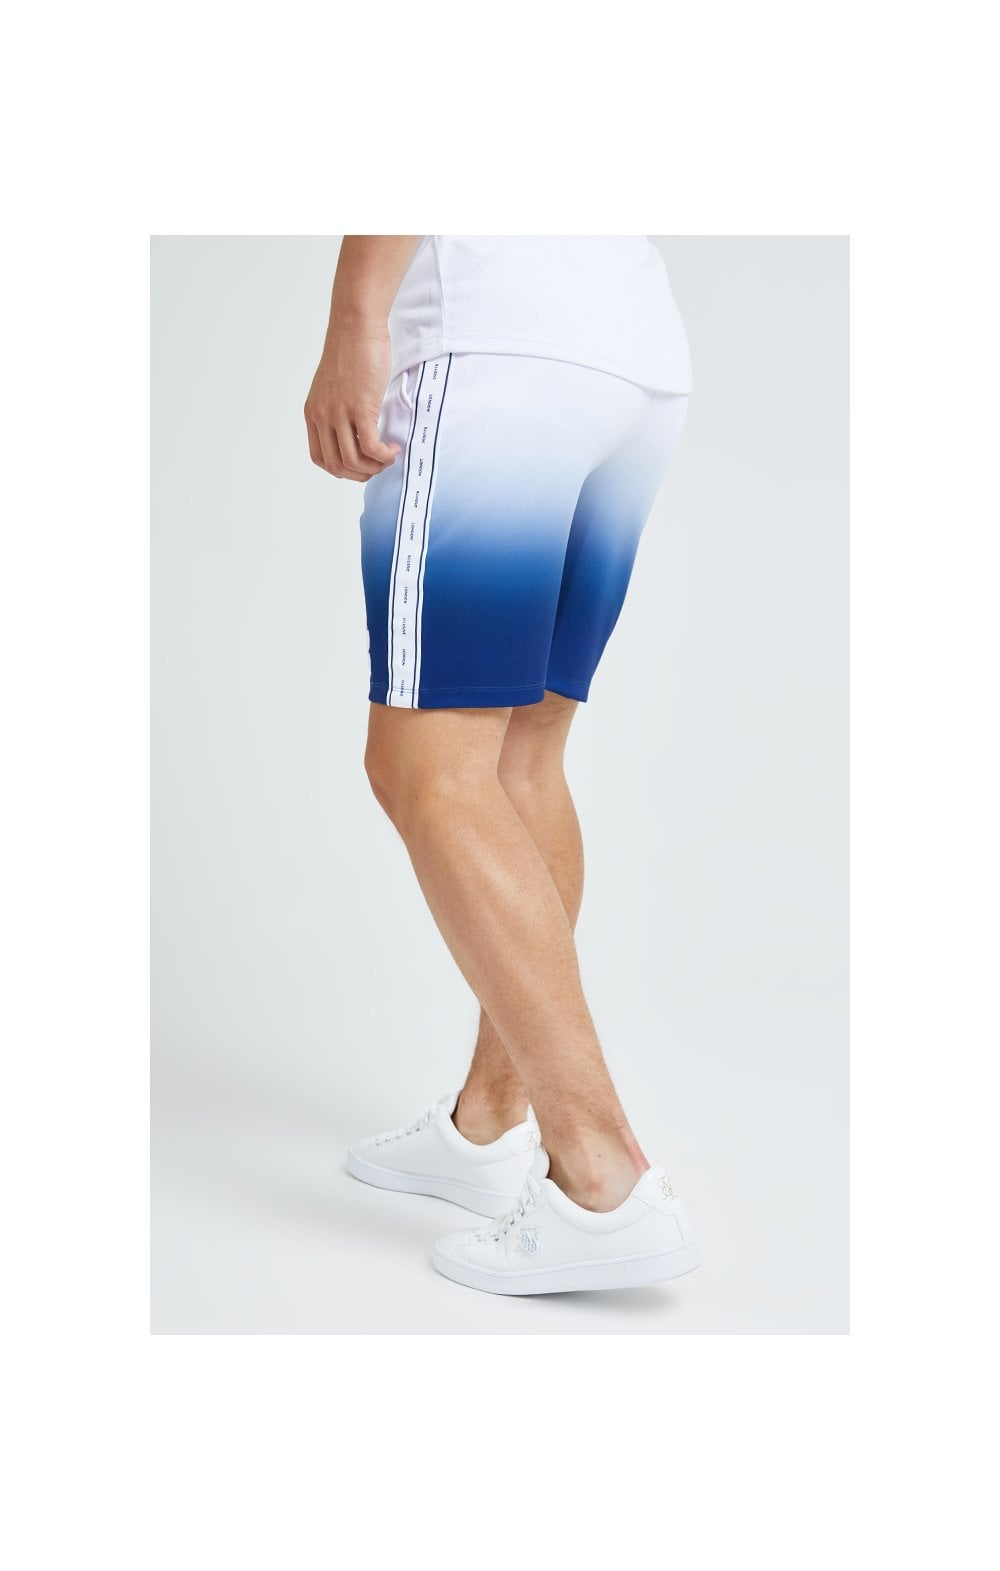 Illusive London Fade Poly Shorts - Indigo & White (6)